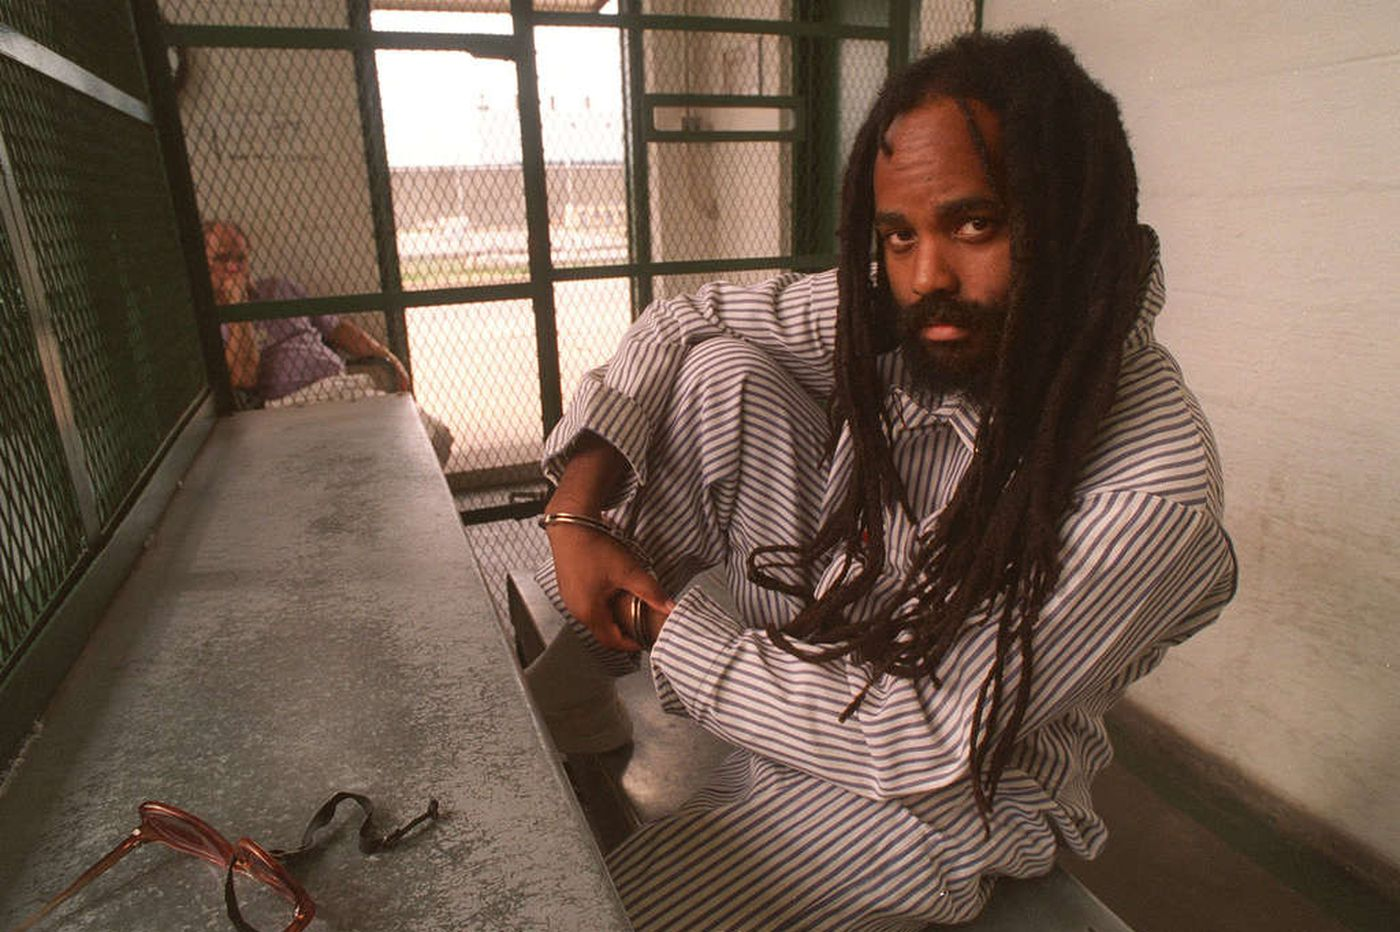 Philly DA to drop challenge in Mumia Abu-Jamal case, clearing appeal to reach high court